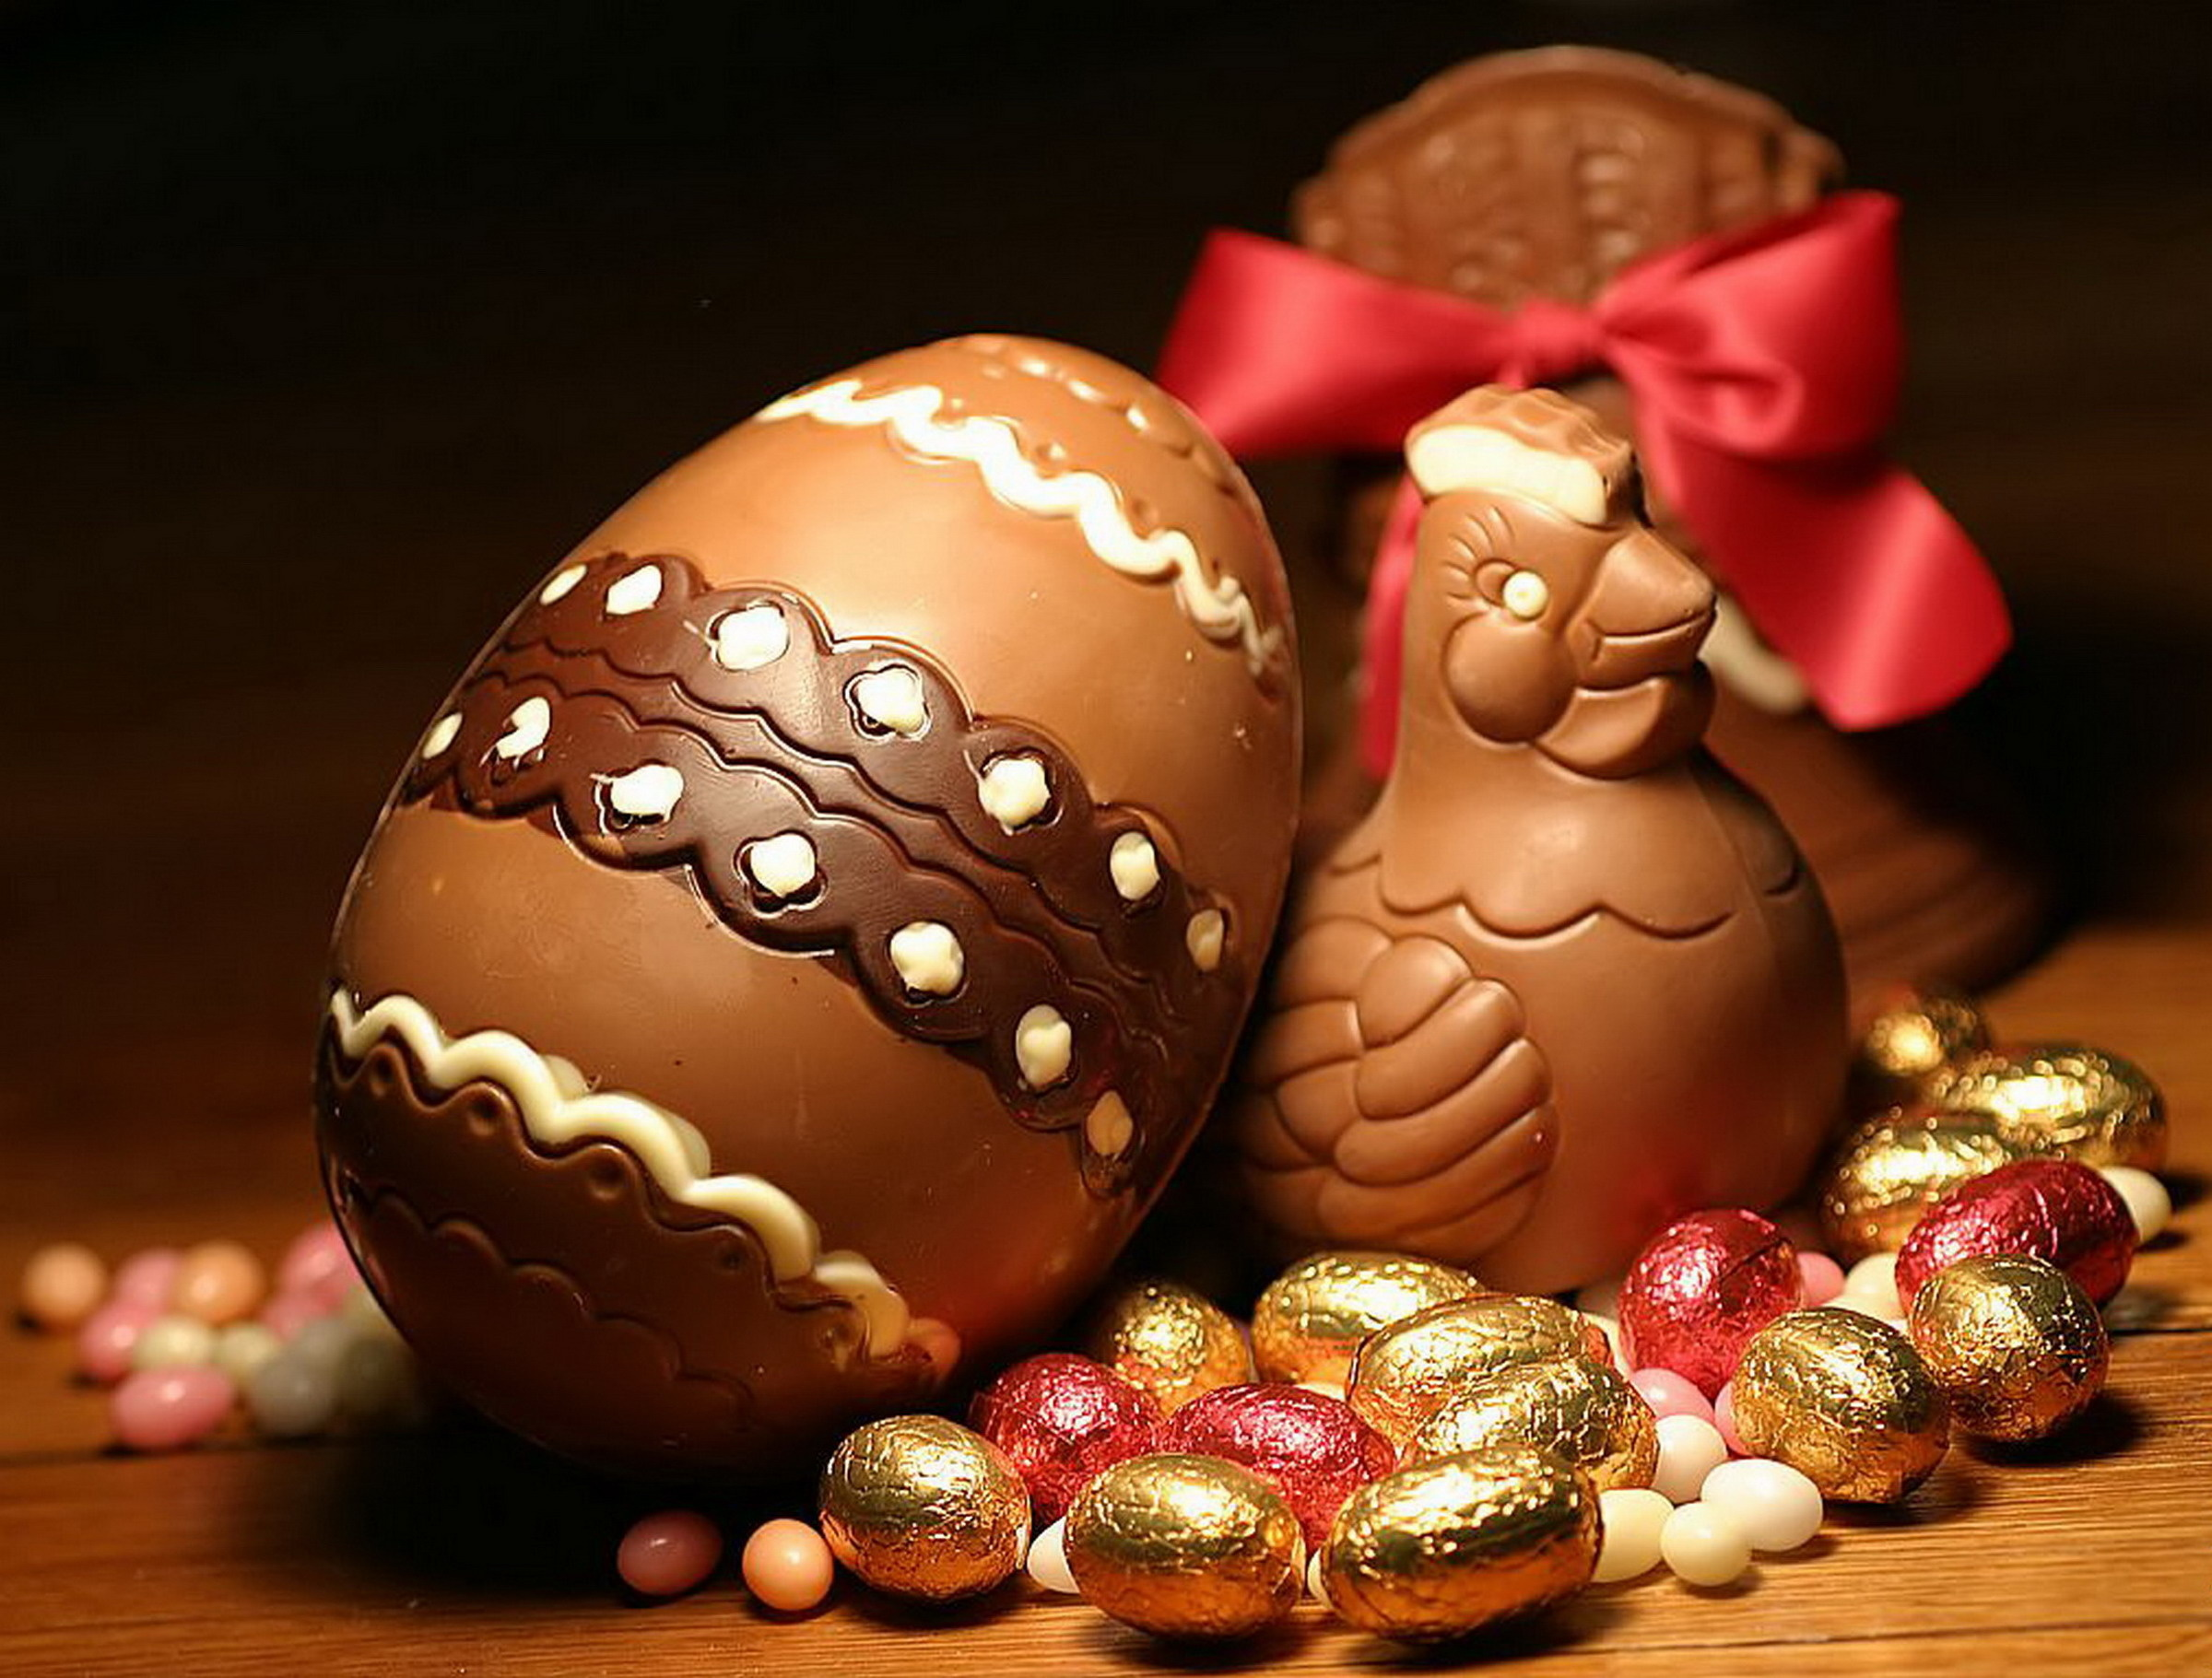 This Easter Head Over To Dezertfox To Devour Some Delish Easter Eggs And Bunnies